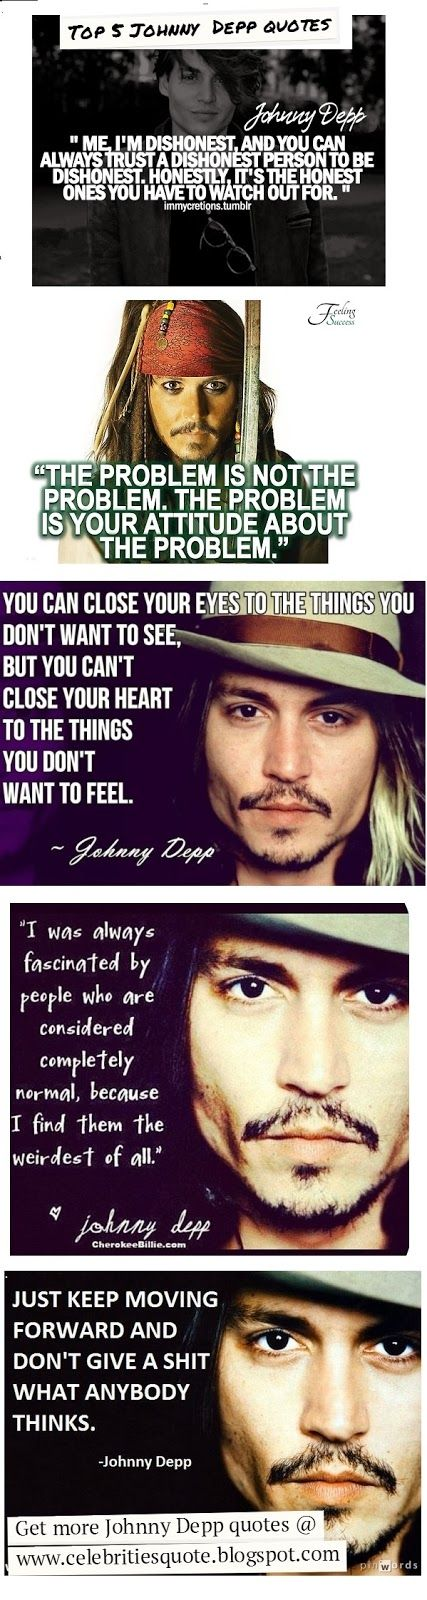 Top Five Johnny Depp Quotes.